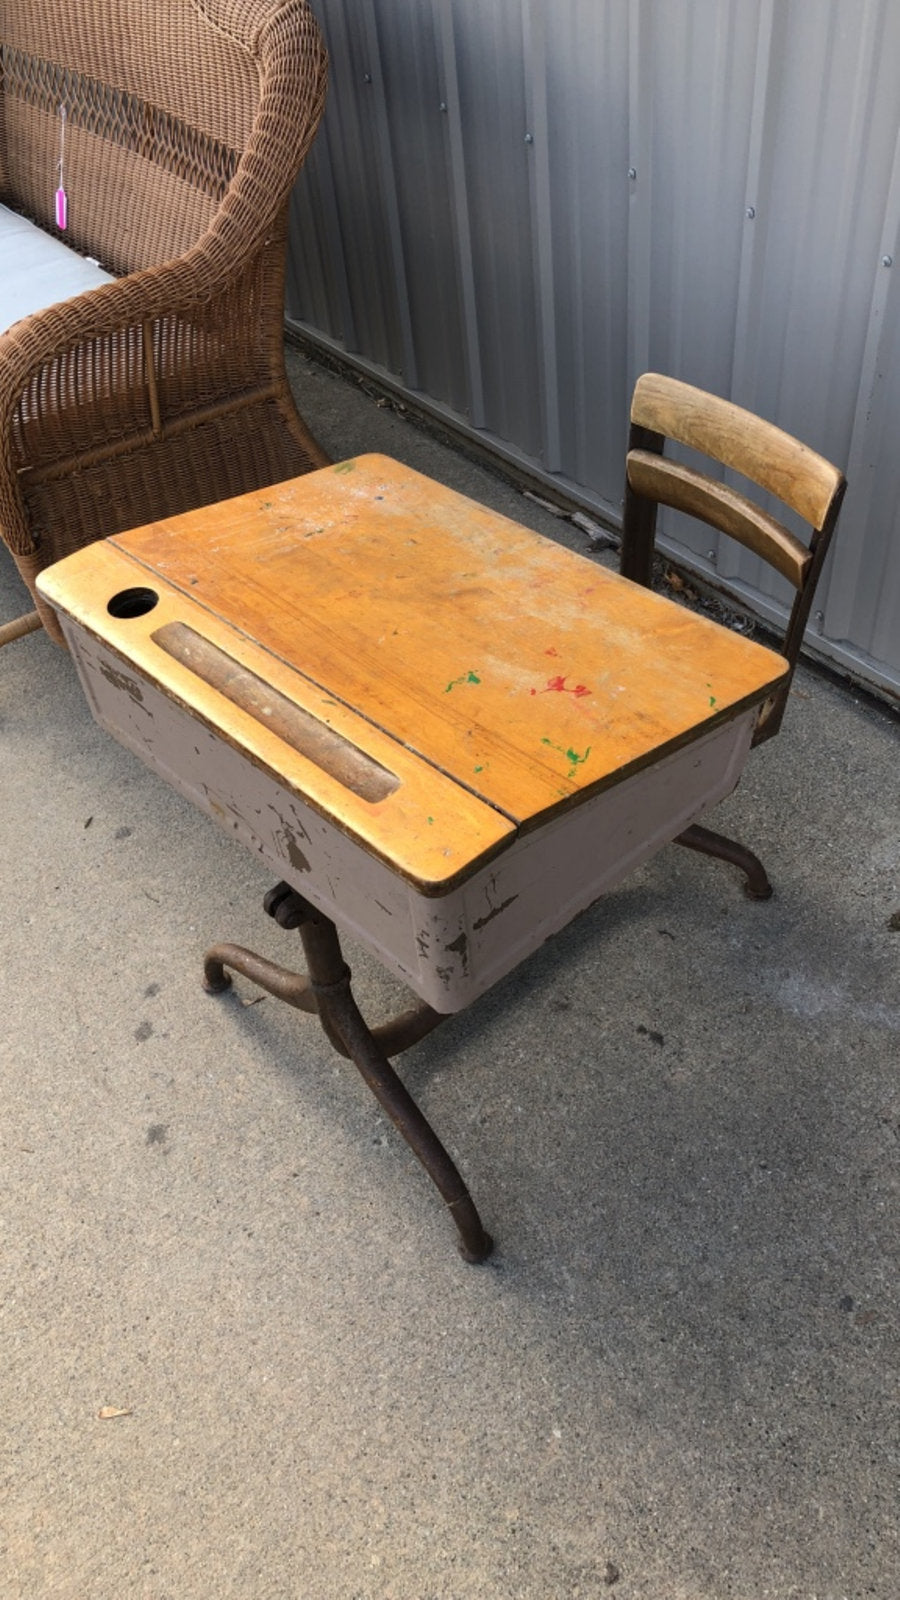 Old Vintage Child's School Desk